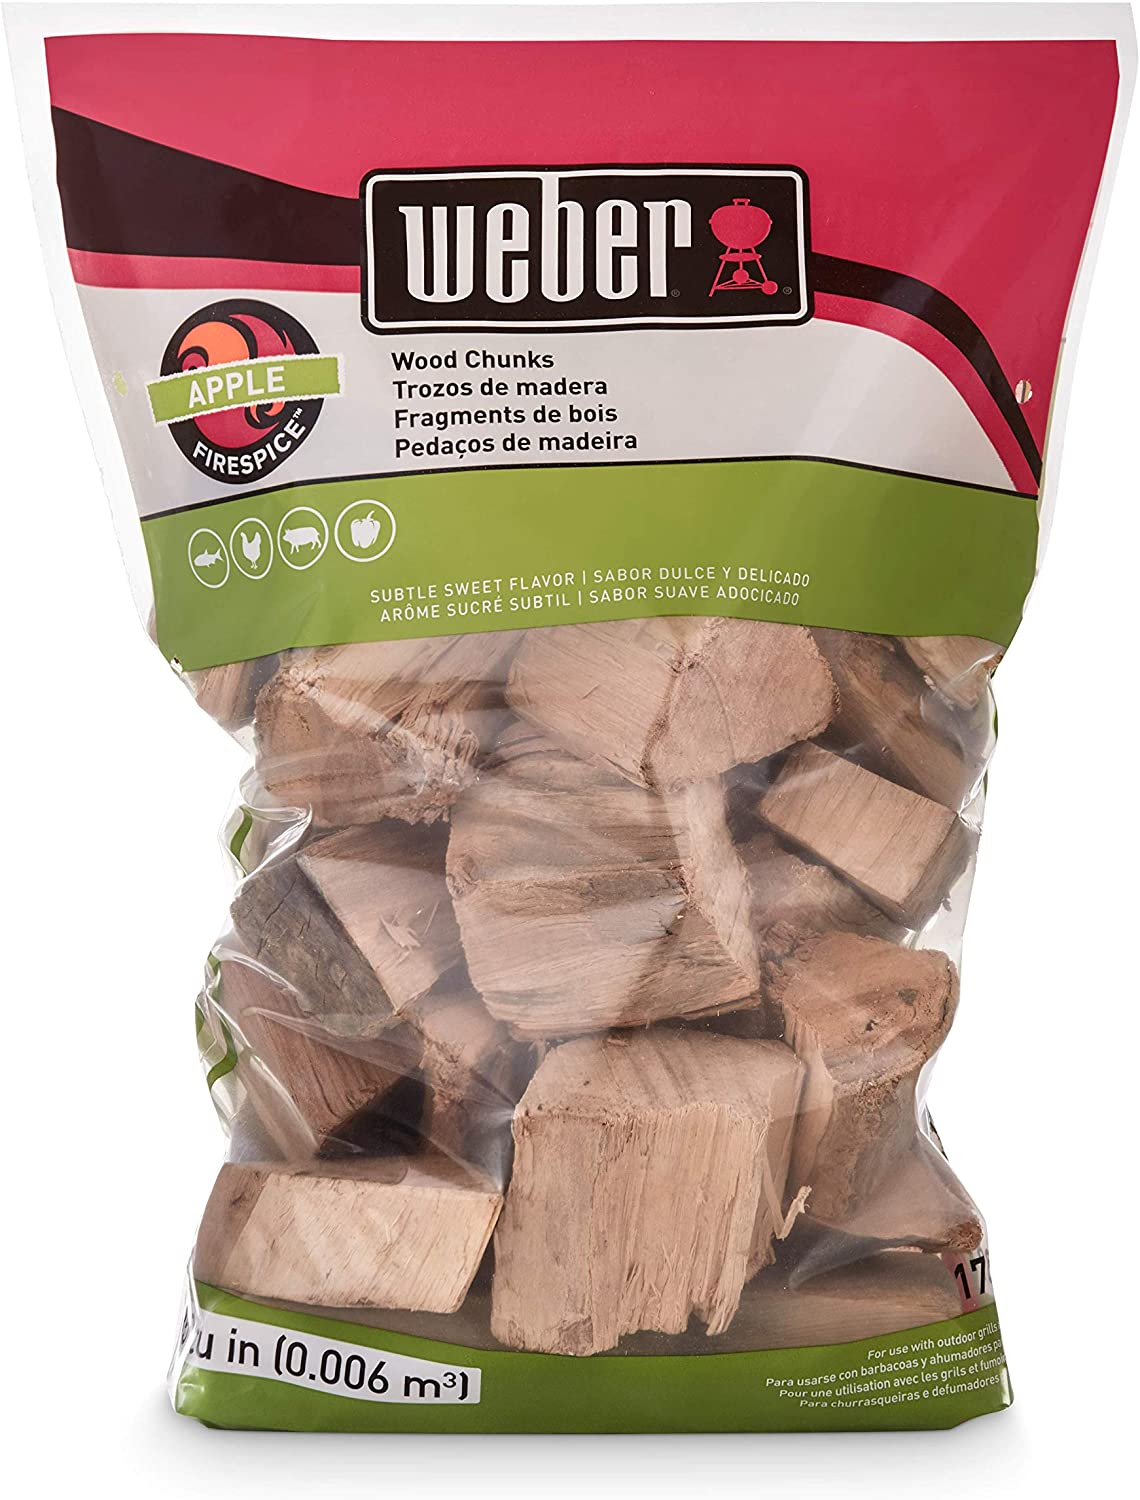 apple wood chunks for smoking chicken